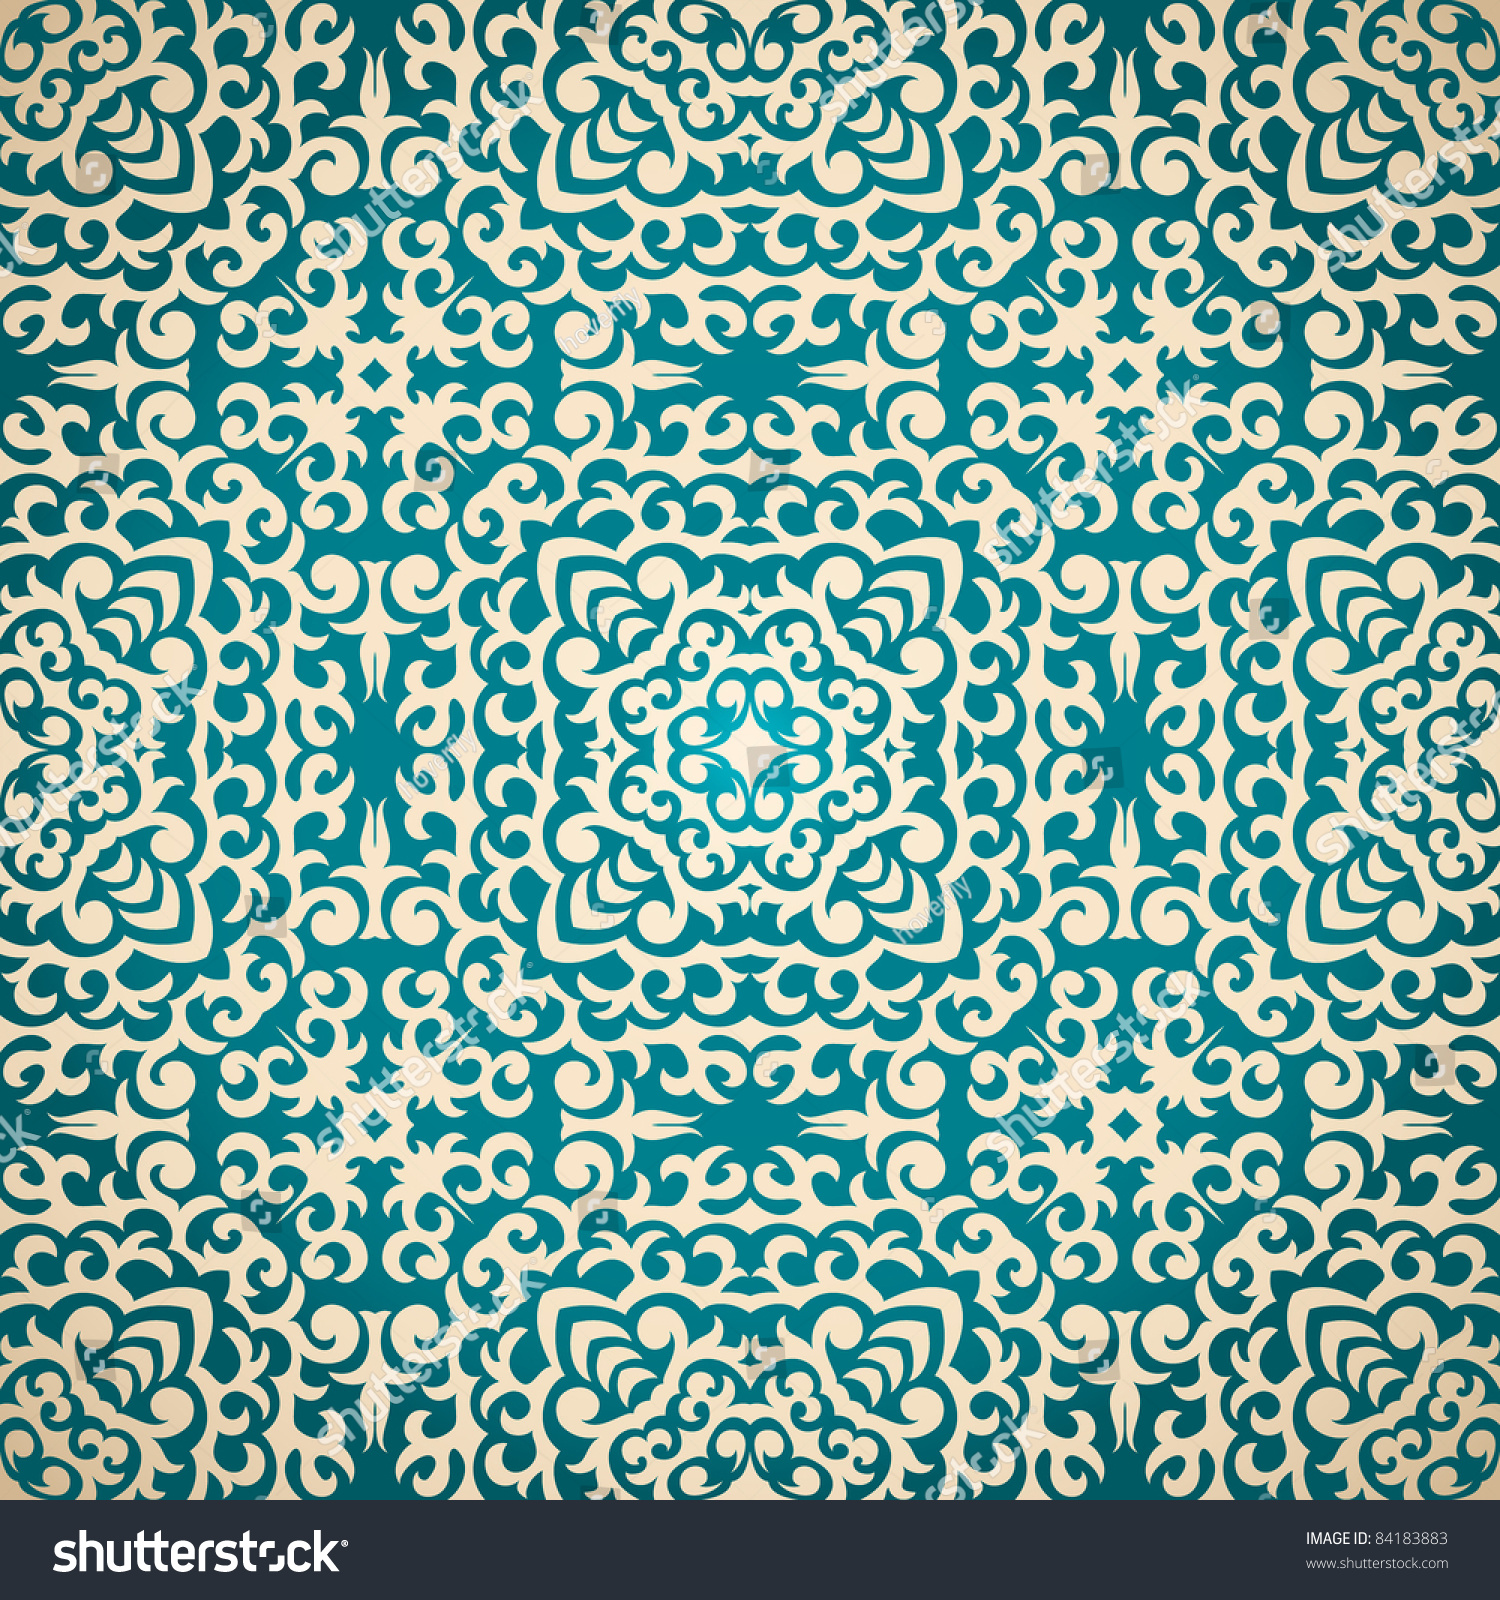 vintage repeating wallpaper - photo #20